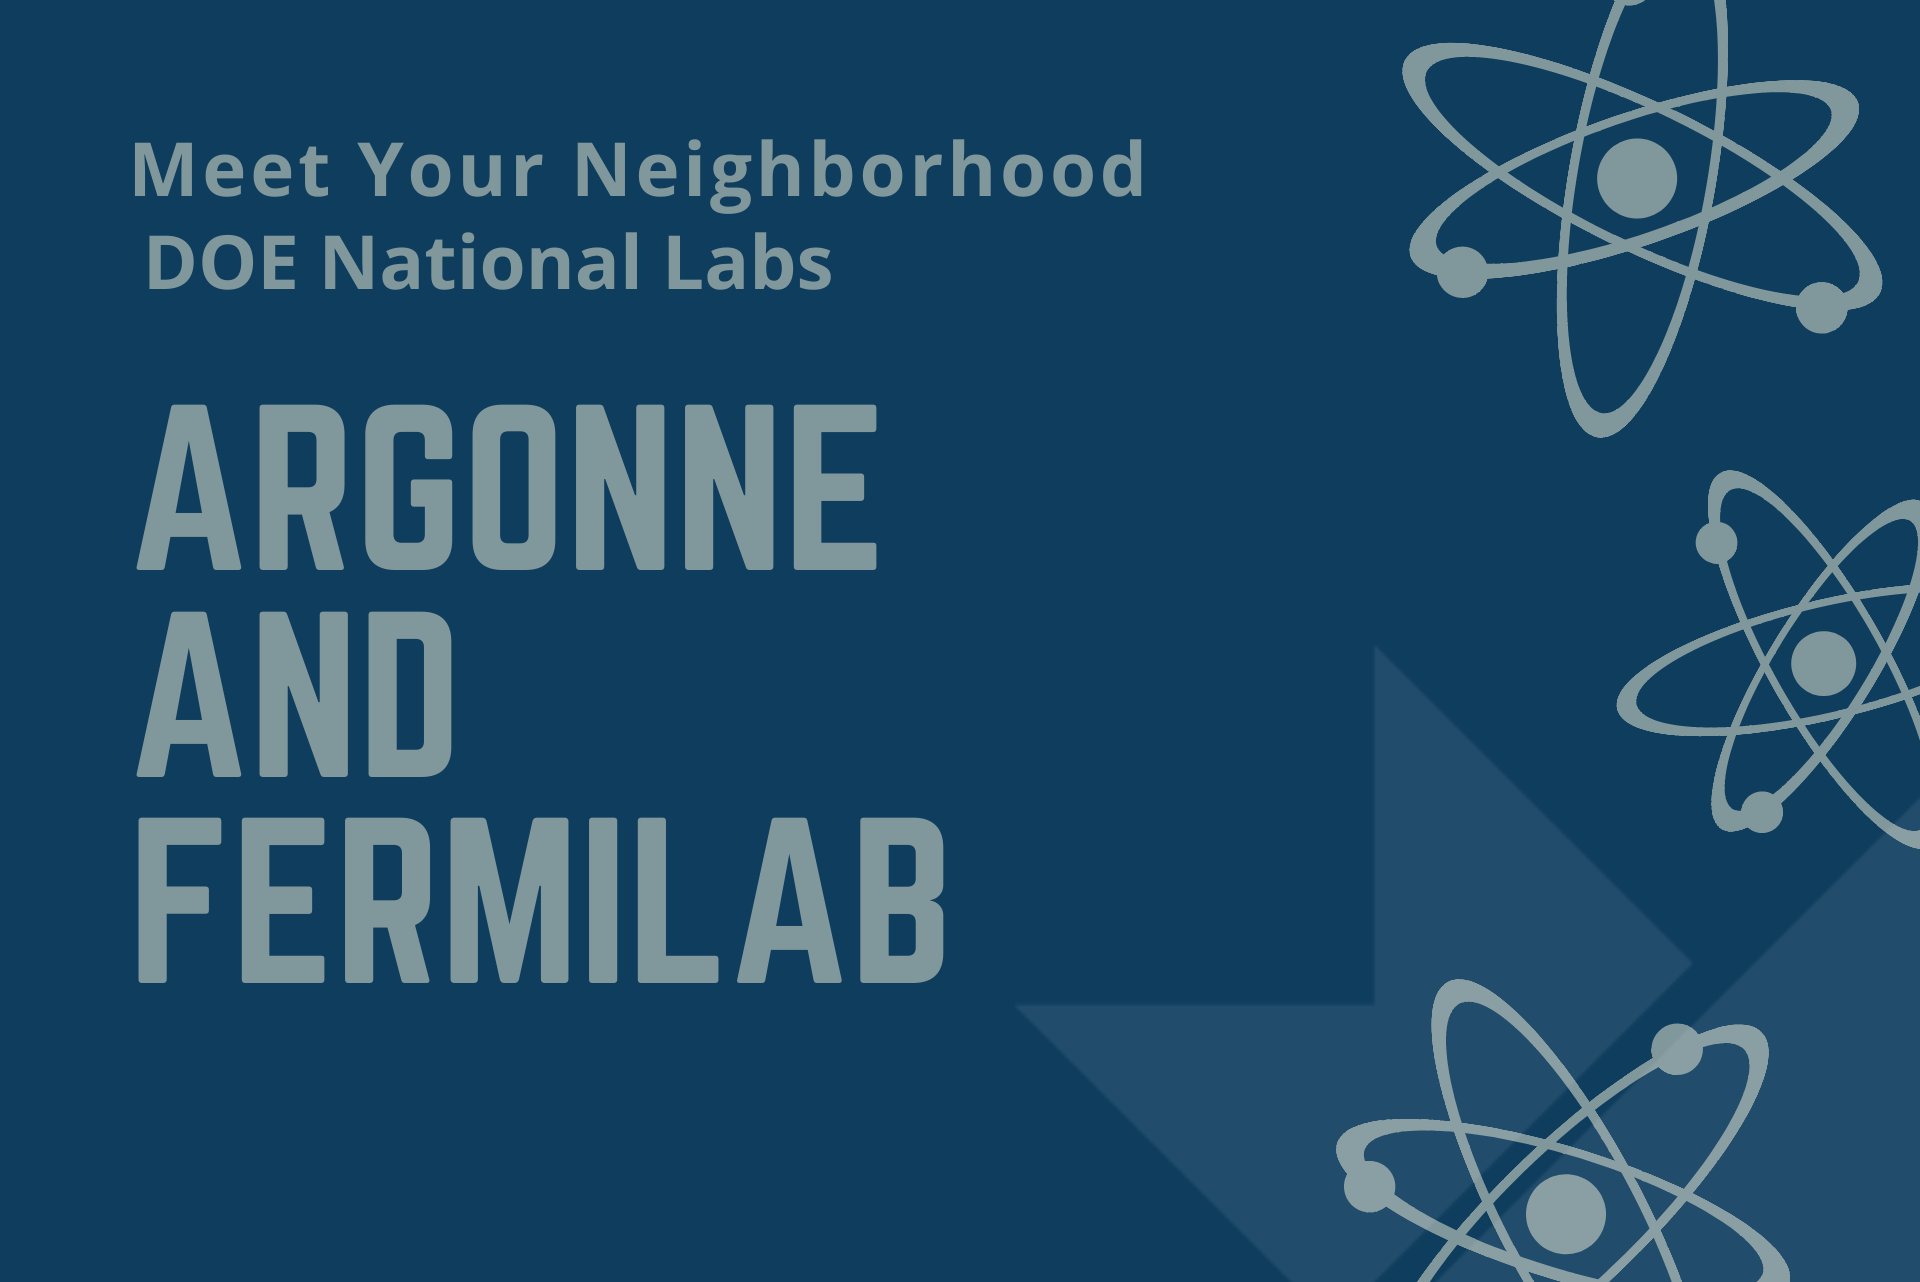 Meet Your Neighborhood DOE National Labs: Argonne and Fermilab